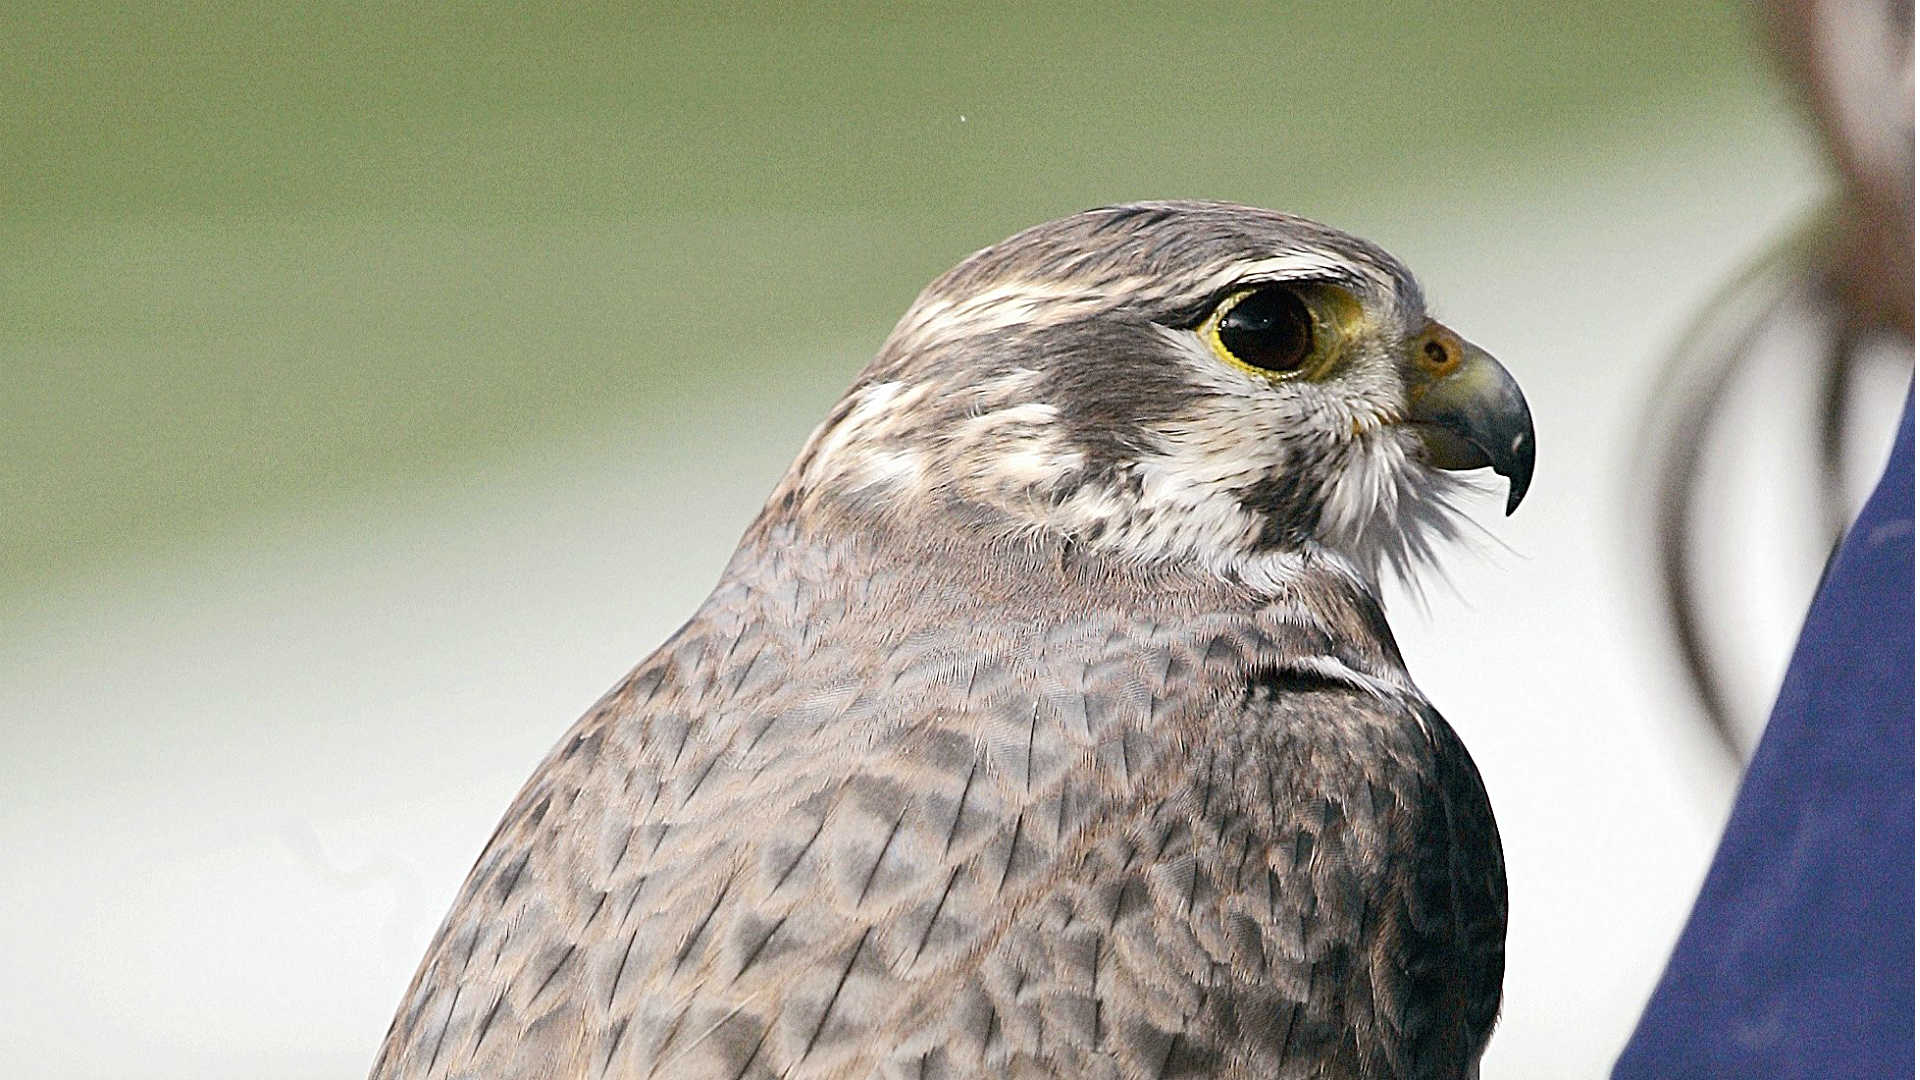 Aurora, the Air Force's falcon, injured in West Point prank